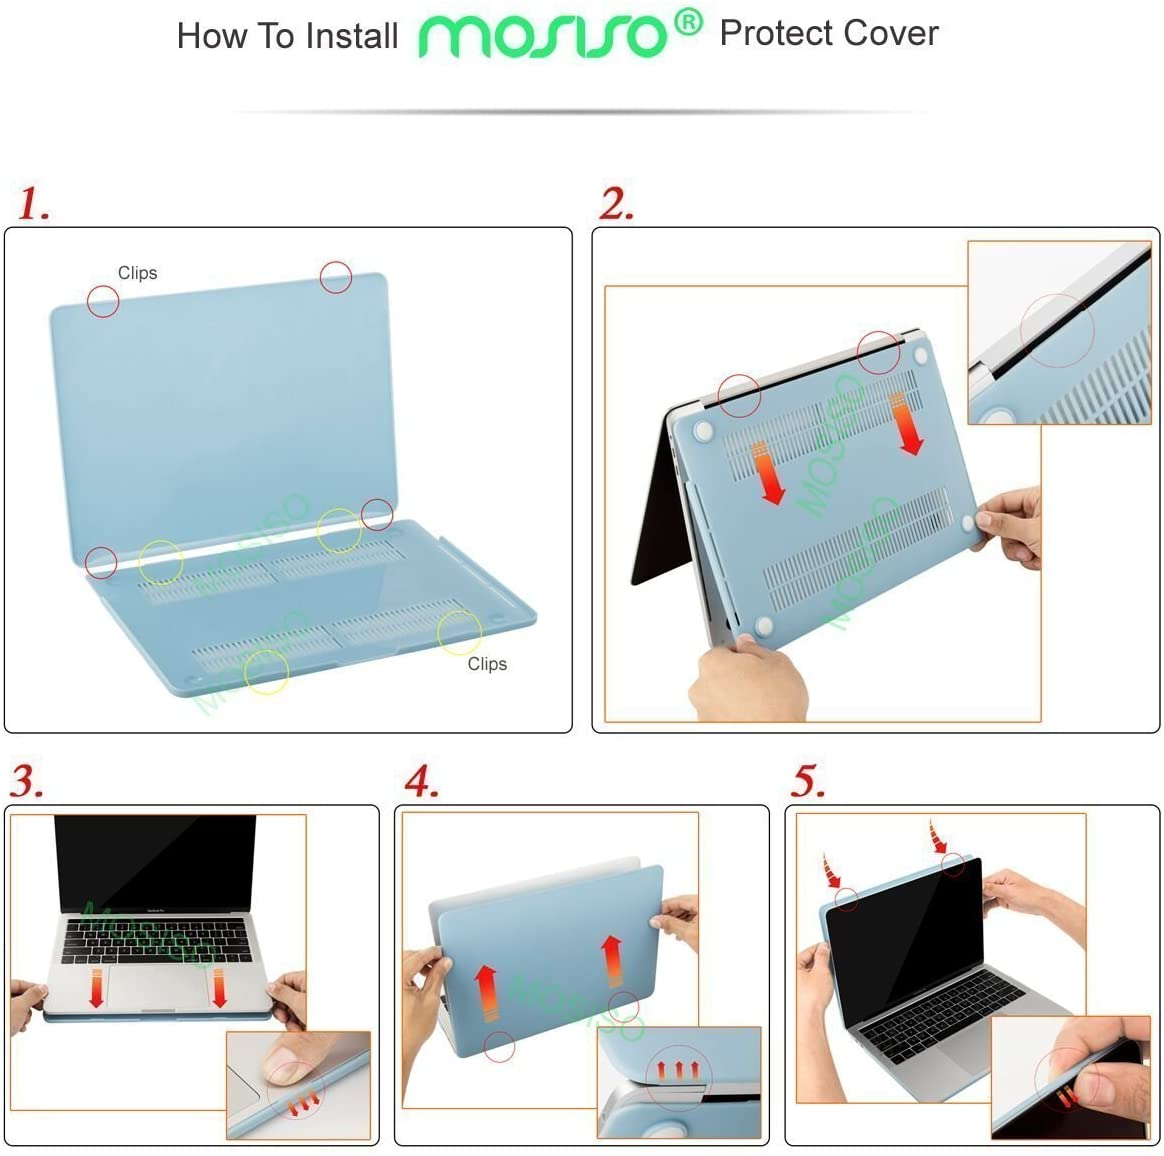 Plastic Hard Case /& Keyboard Cover /& Screen Protector Compatible with MacBook Pro 13 Lotus Clear Base MOSISO MacBook Pro 13 Case 2019 2018 2017 2016 Release A2159 A1989 A1706 A1708